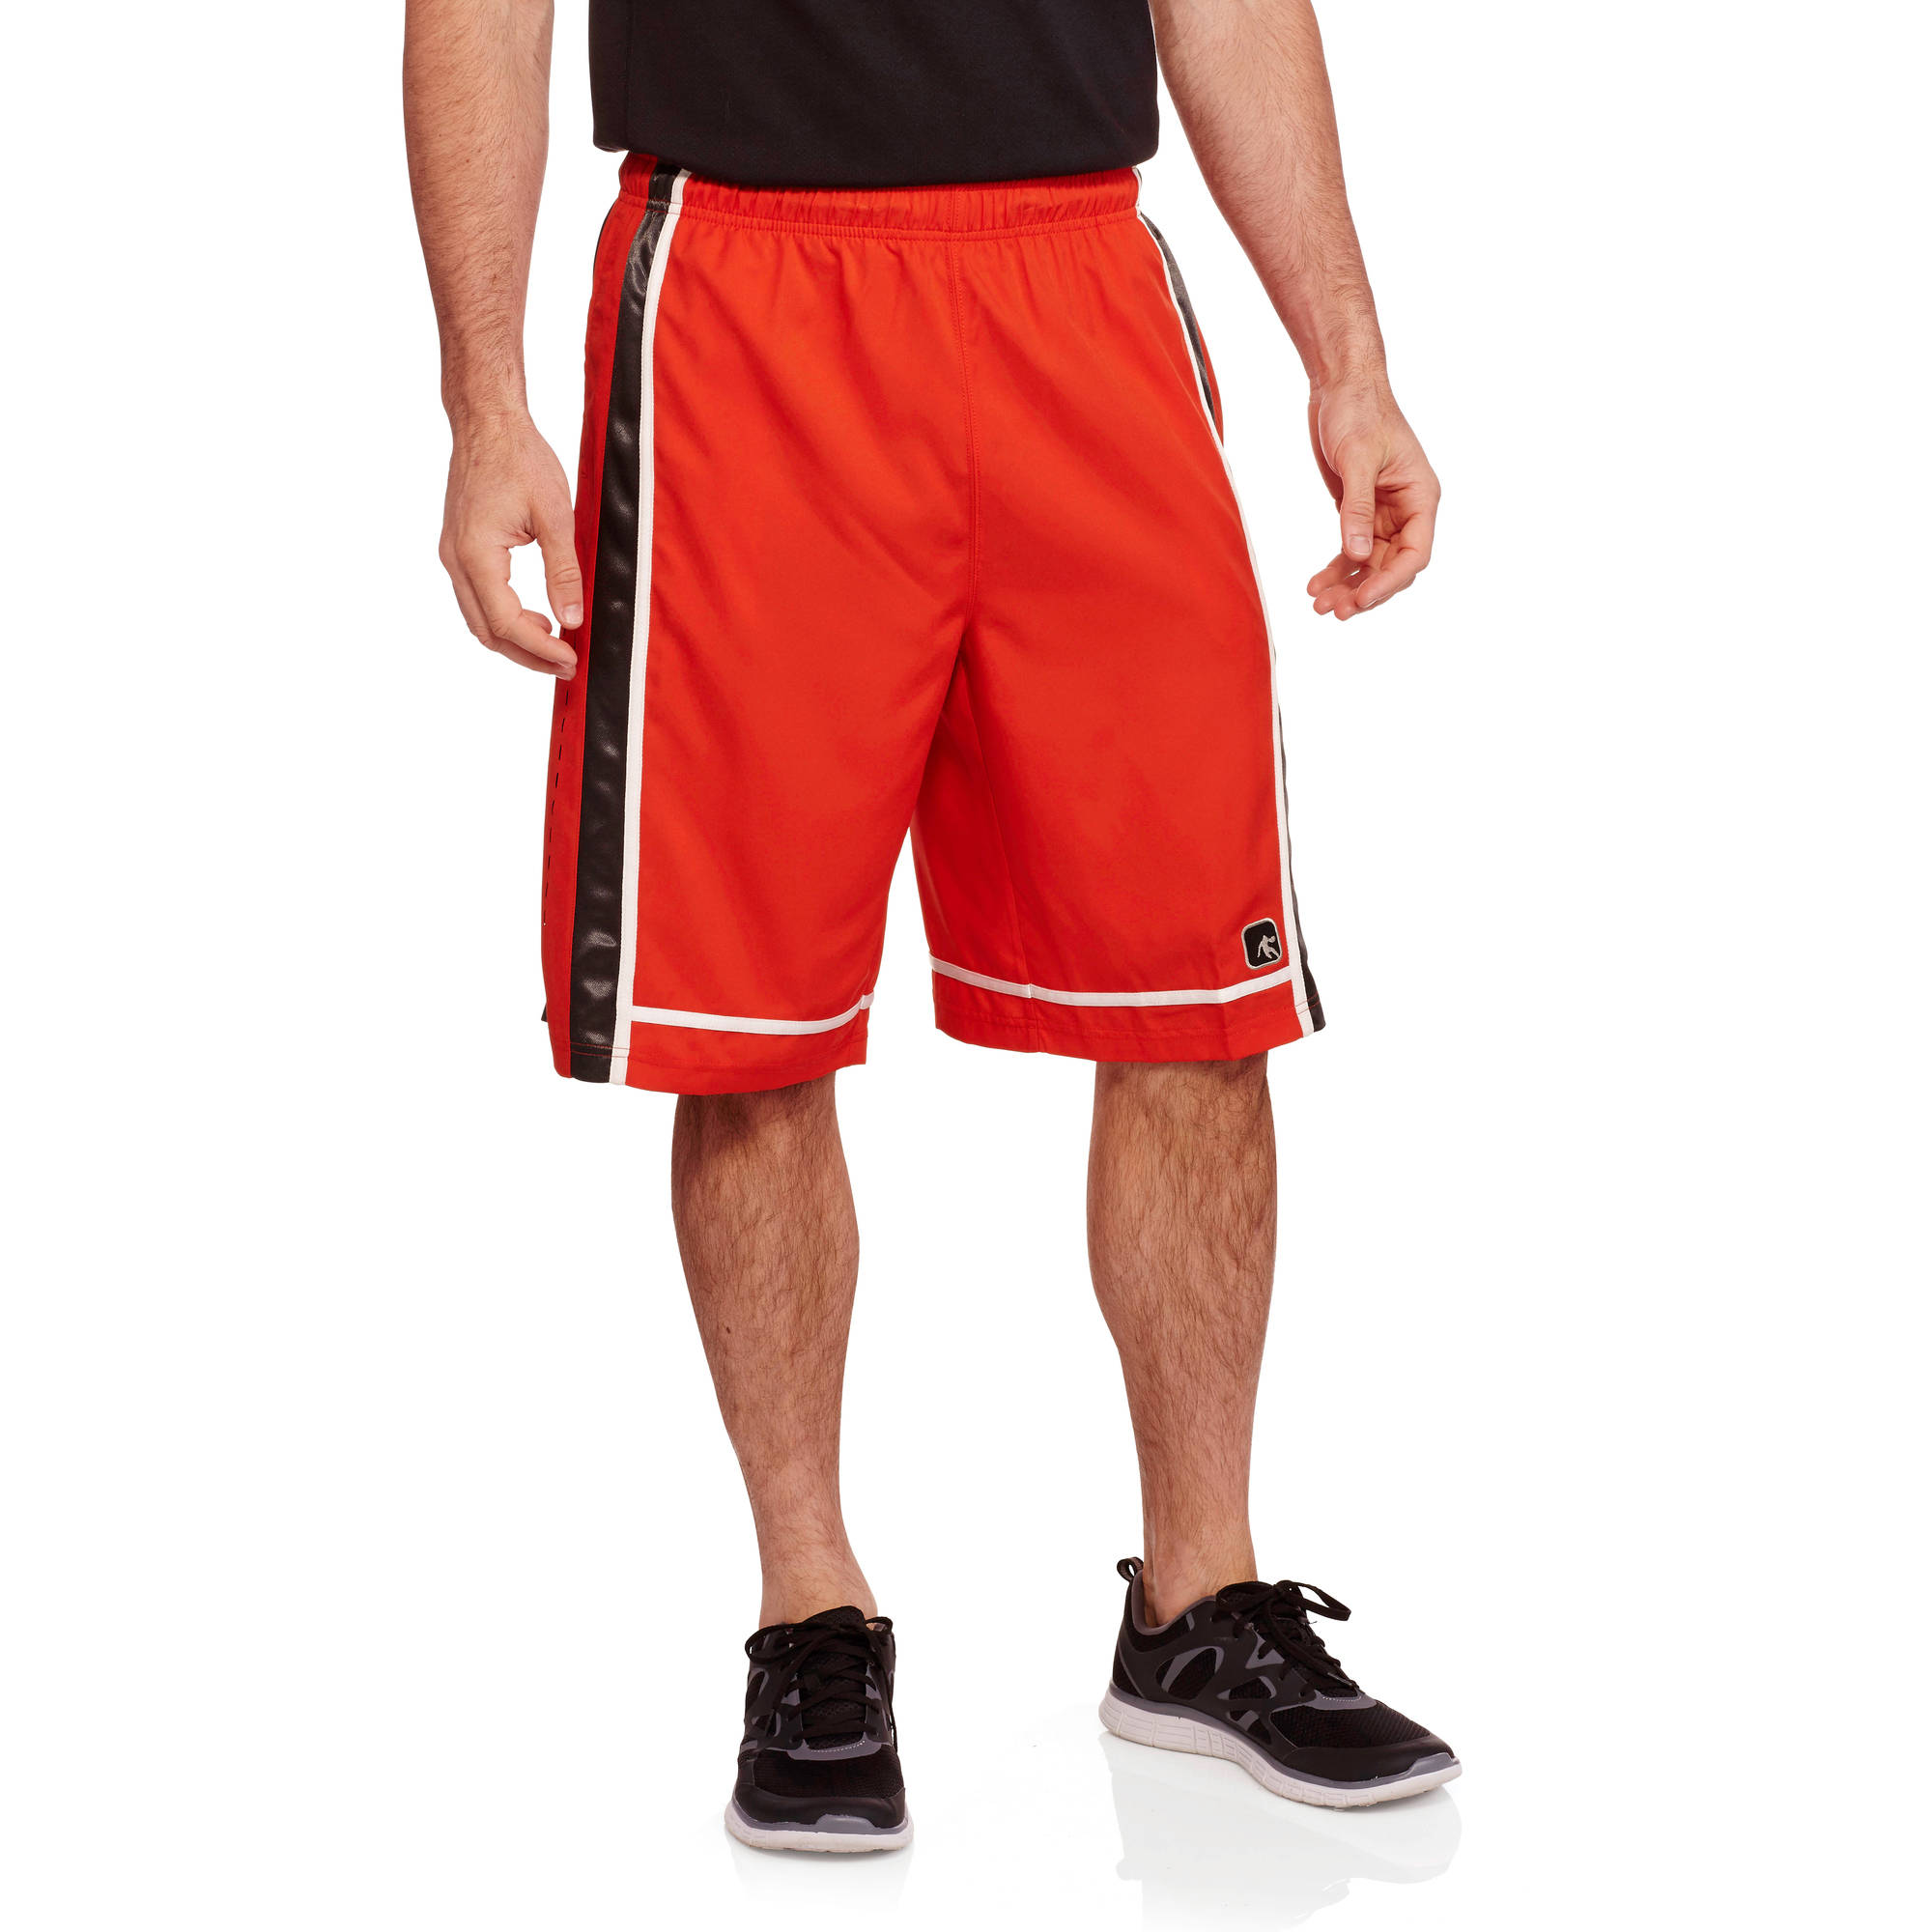 AND1 Men's The Enforcer Basketball Shorts